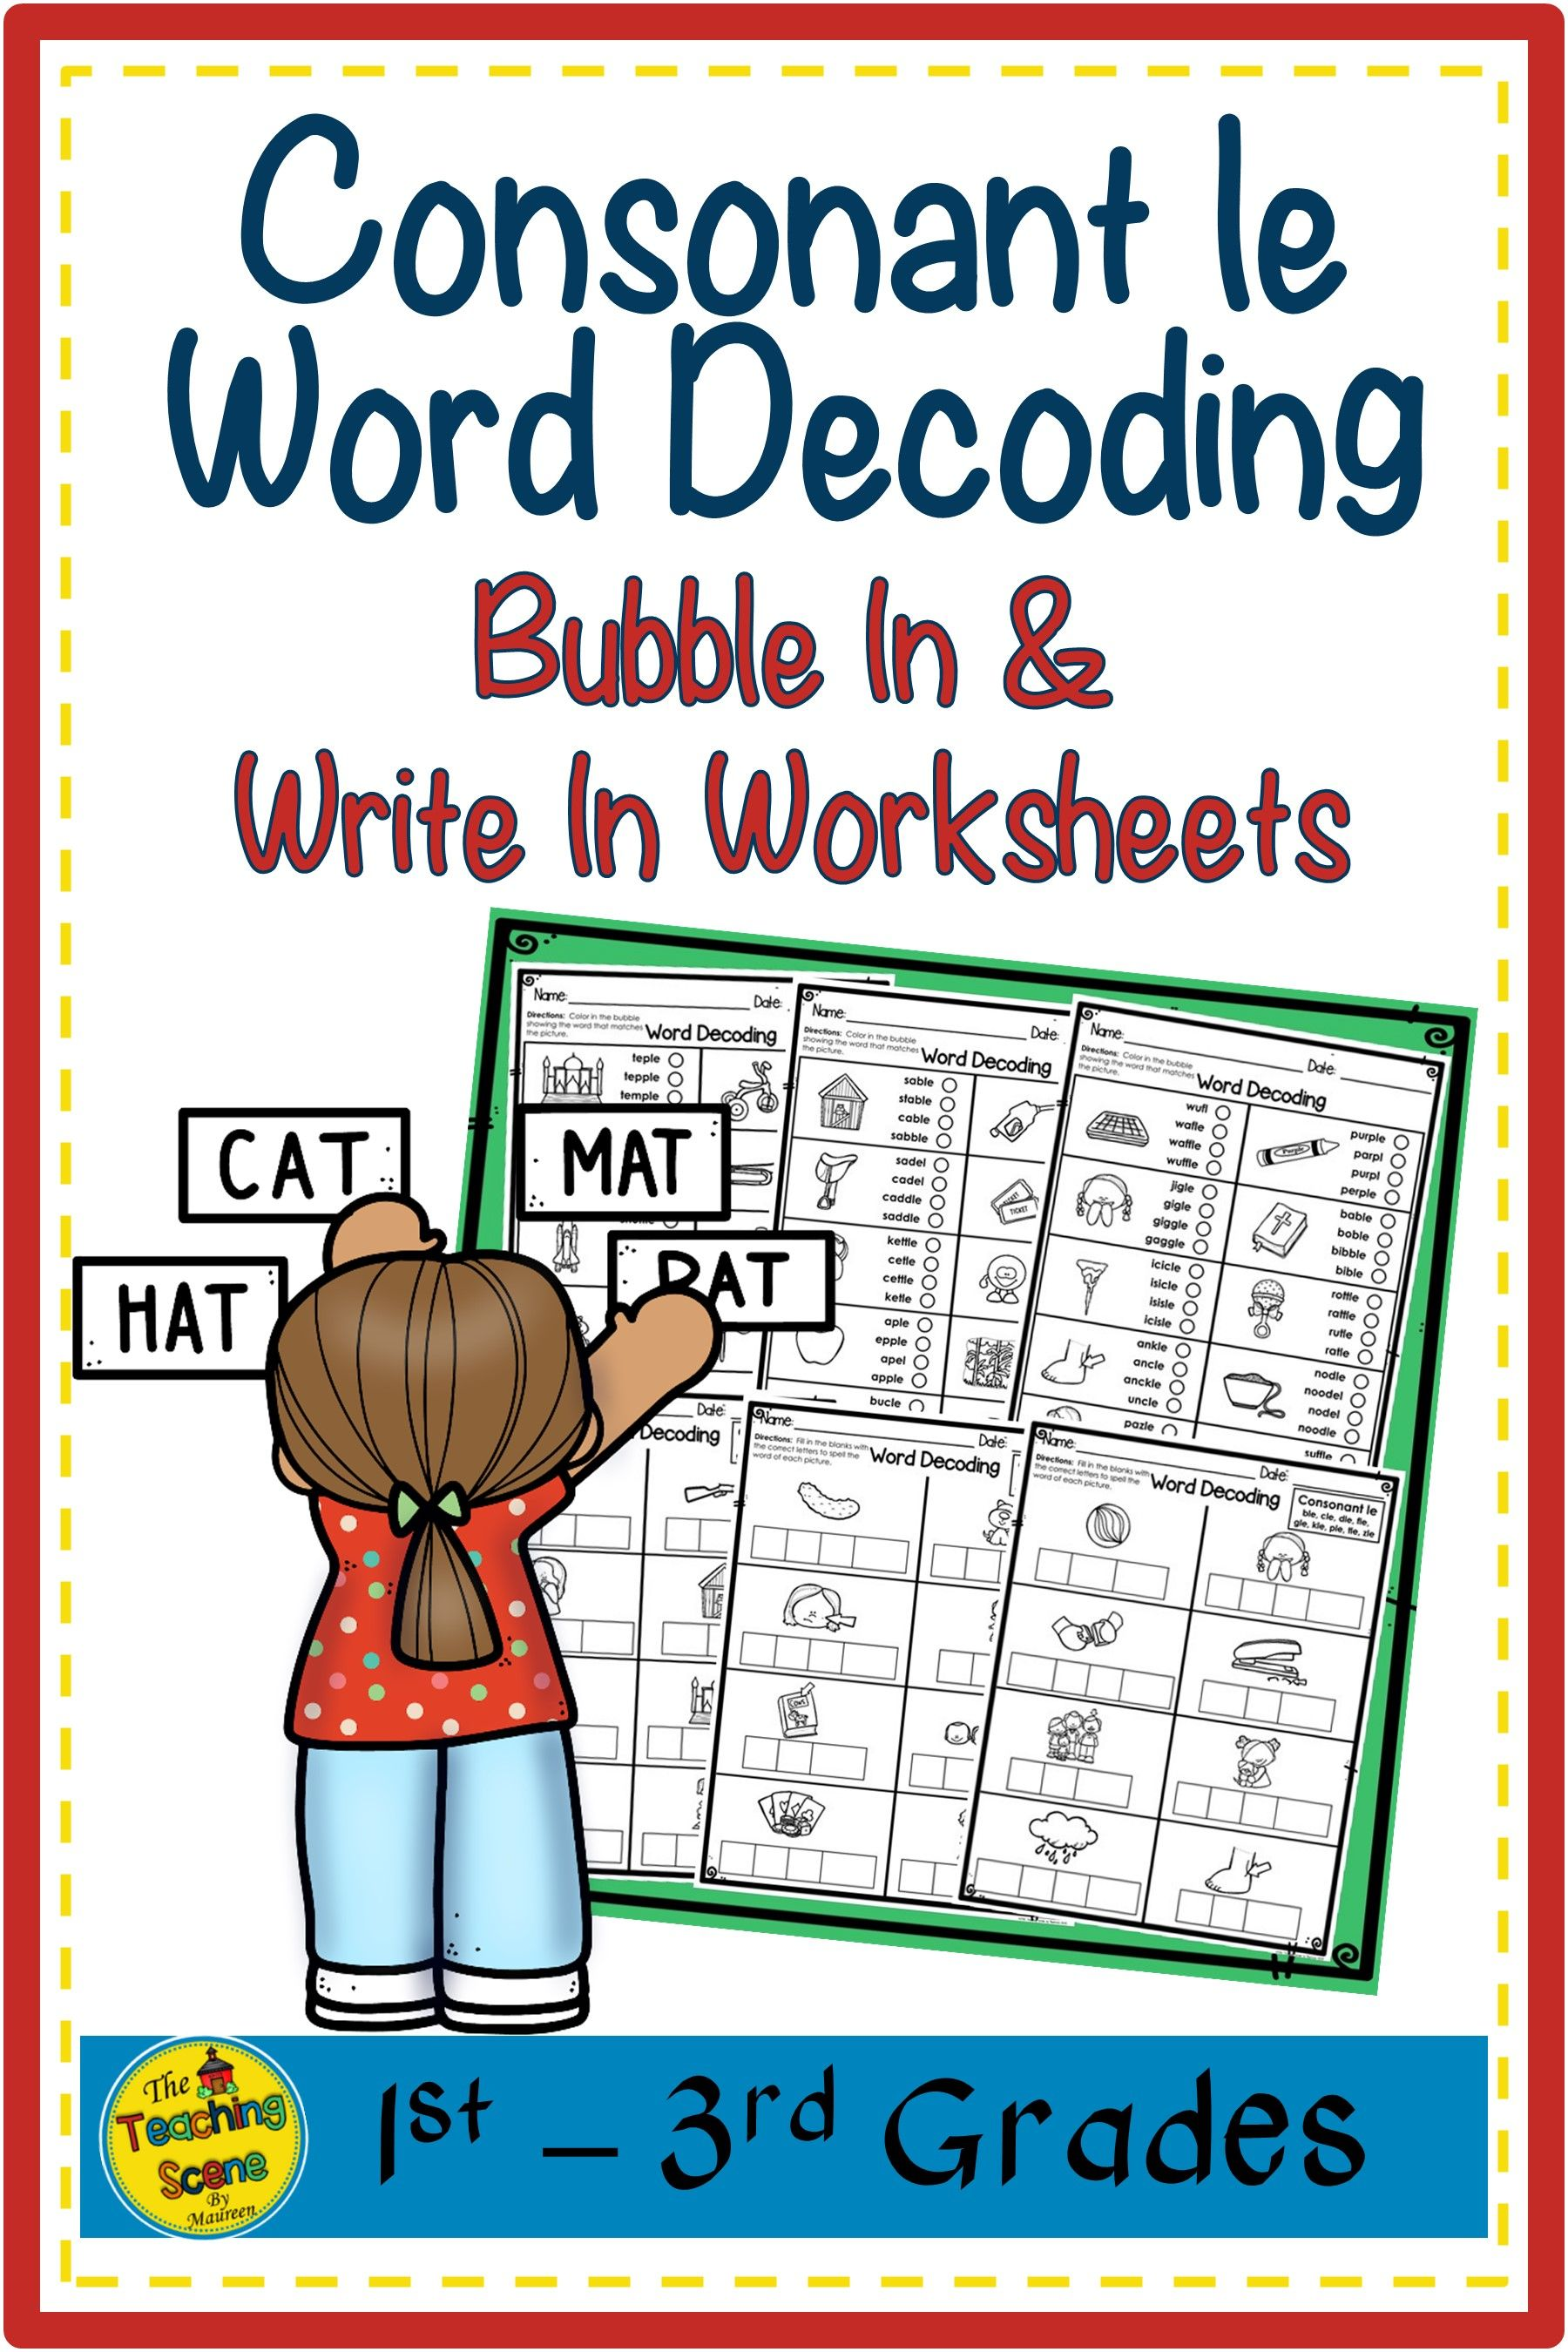 small resolution of Consonant Le Worksheet   Printable Worksheets and Activities for Teachers